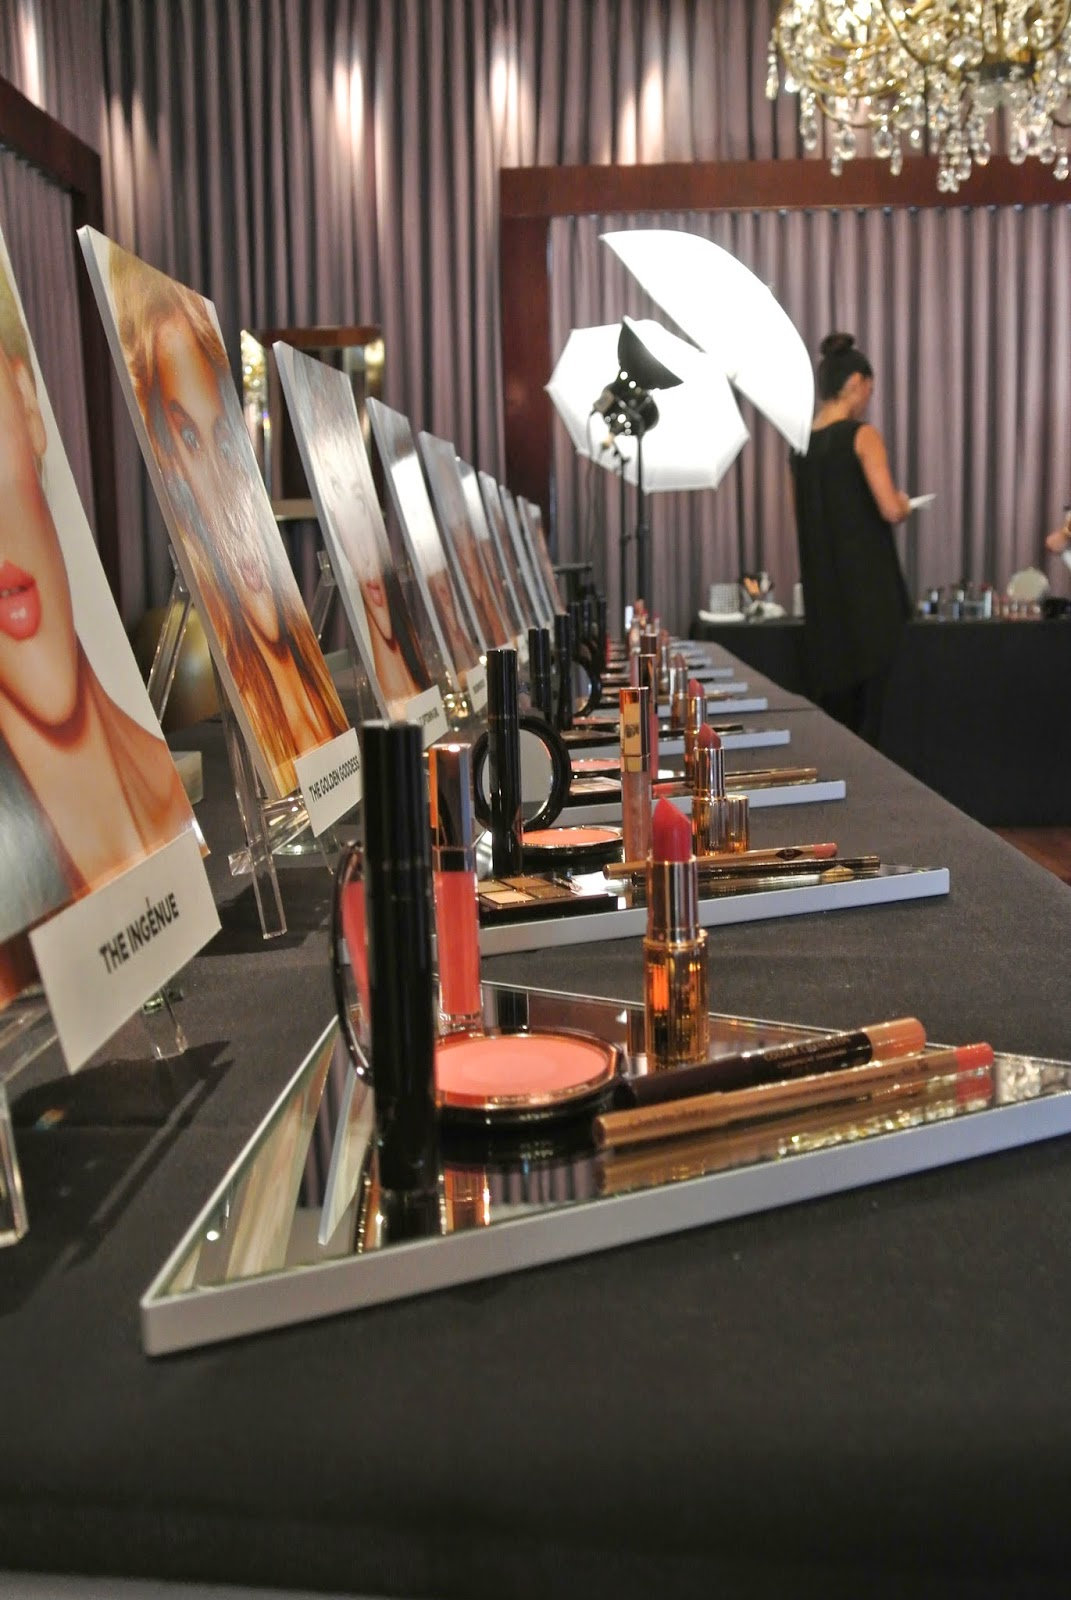 Charlotte Tilbury products on table.